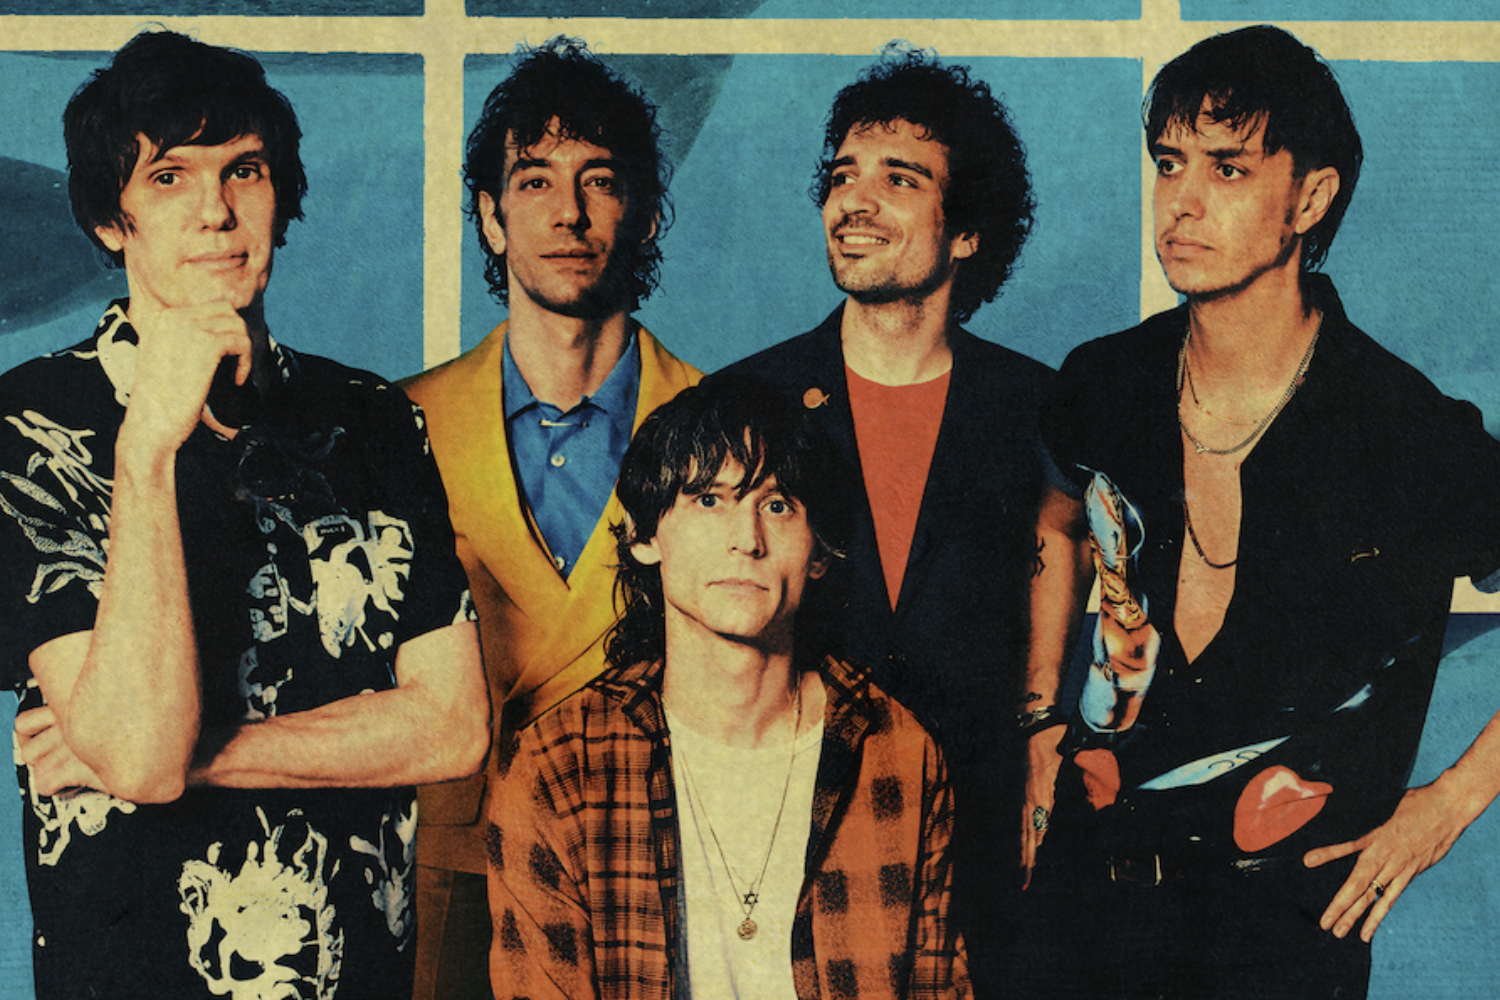 Tracks: The Strokes, Billie Eilish, Drug Store Romeos and more